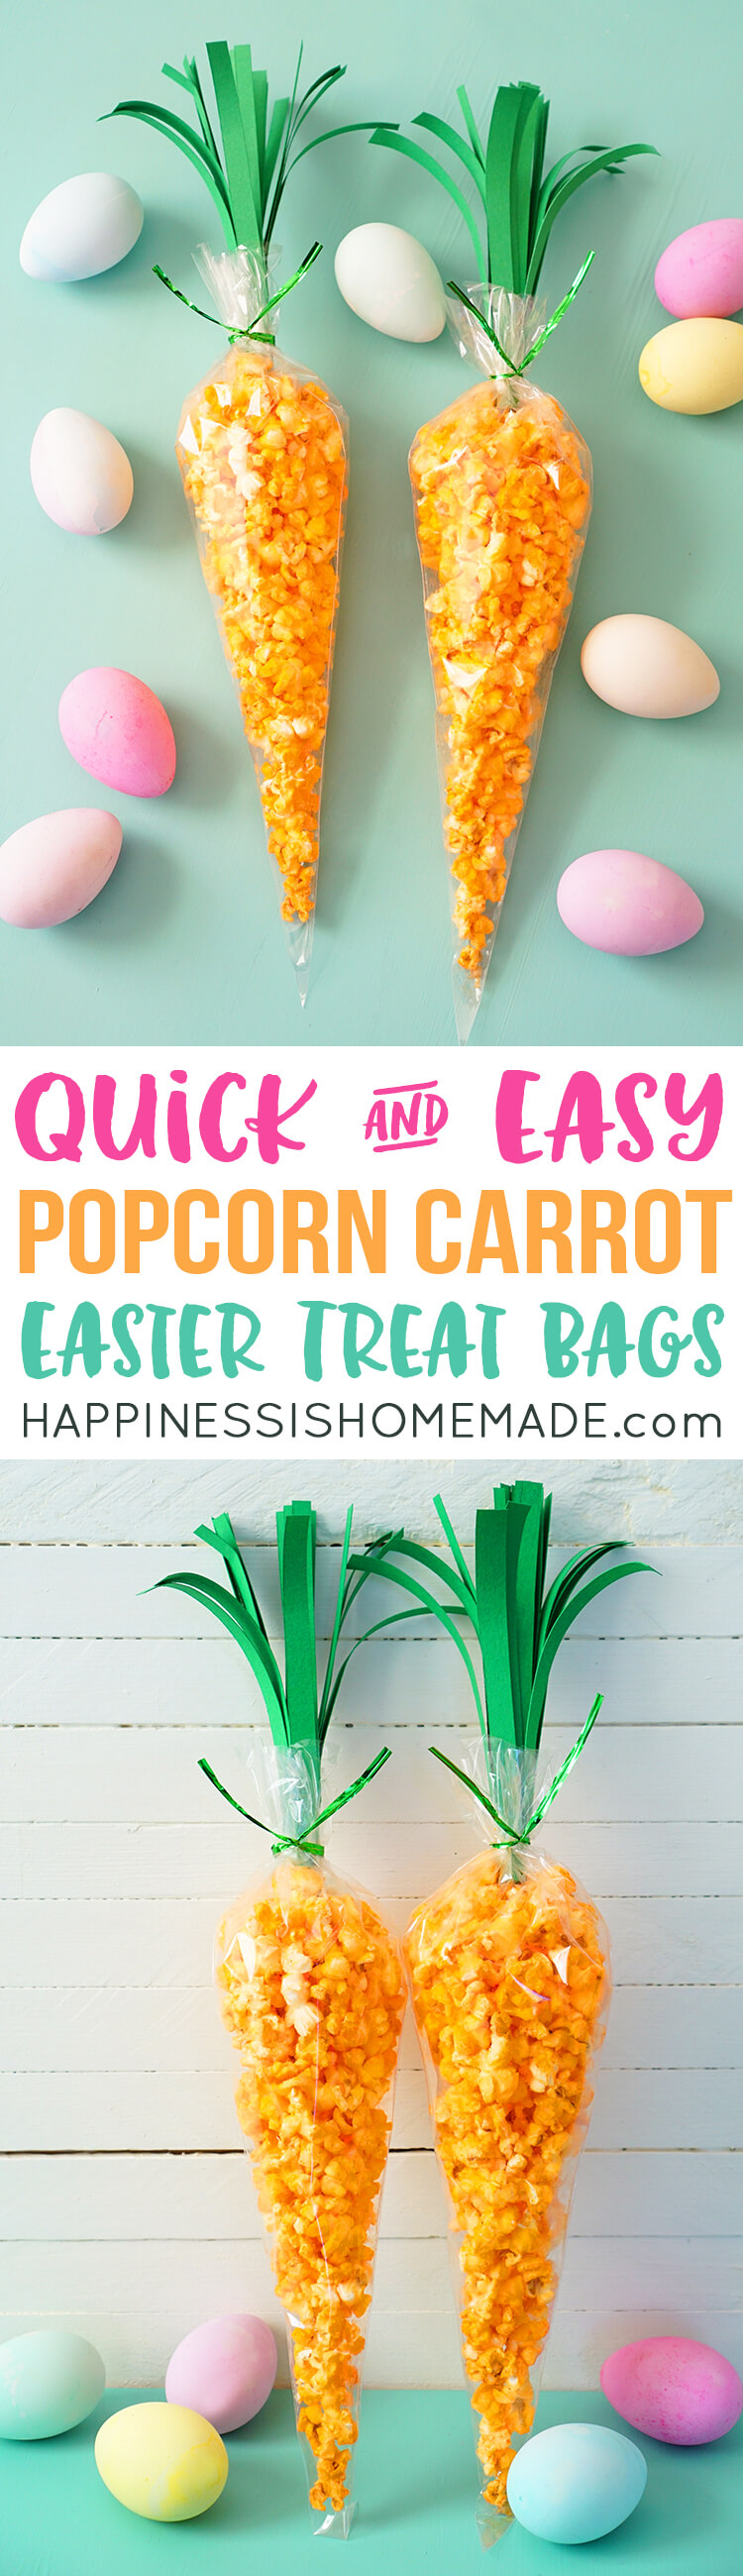 carrot treat bags for easter